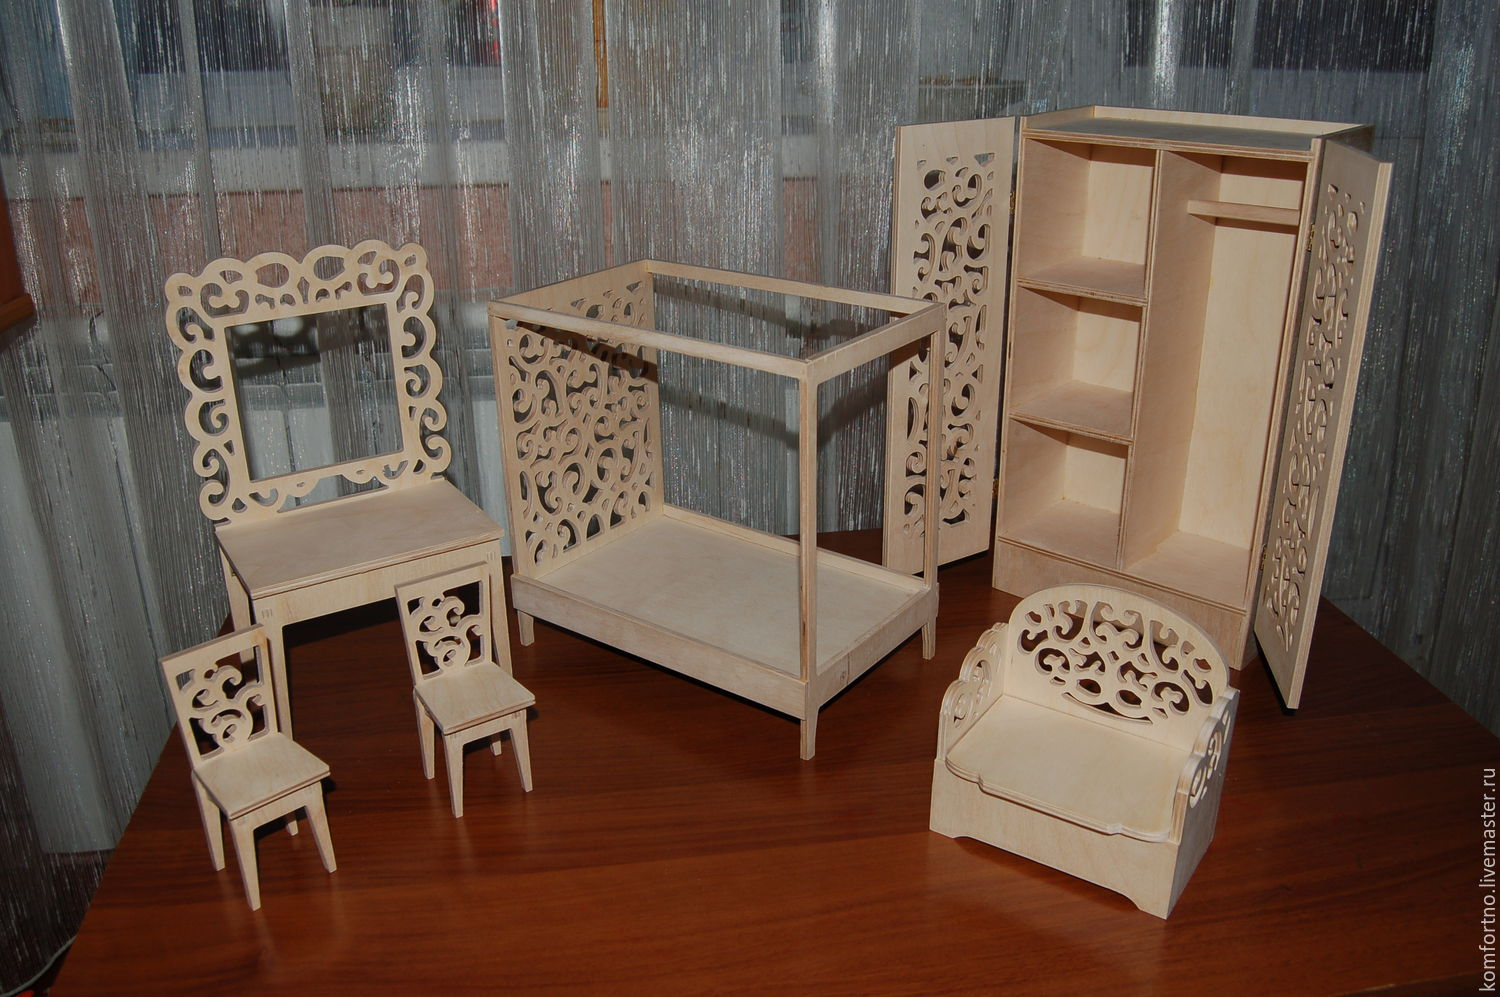 Doll furniture for Barbie dolls and doll-daughter. A set of 260 Procurement for decoupage and painting.